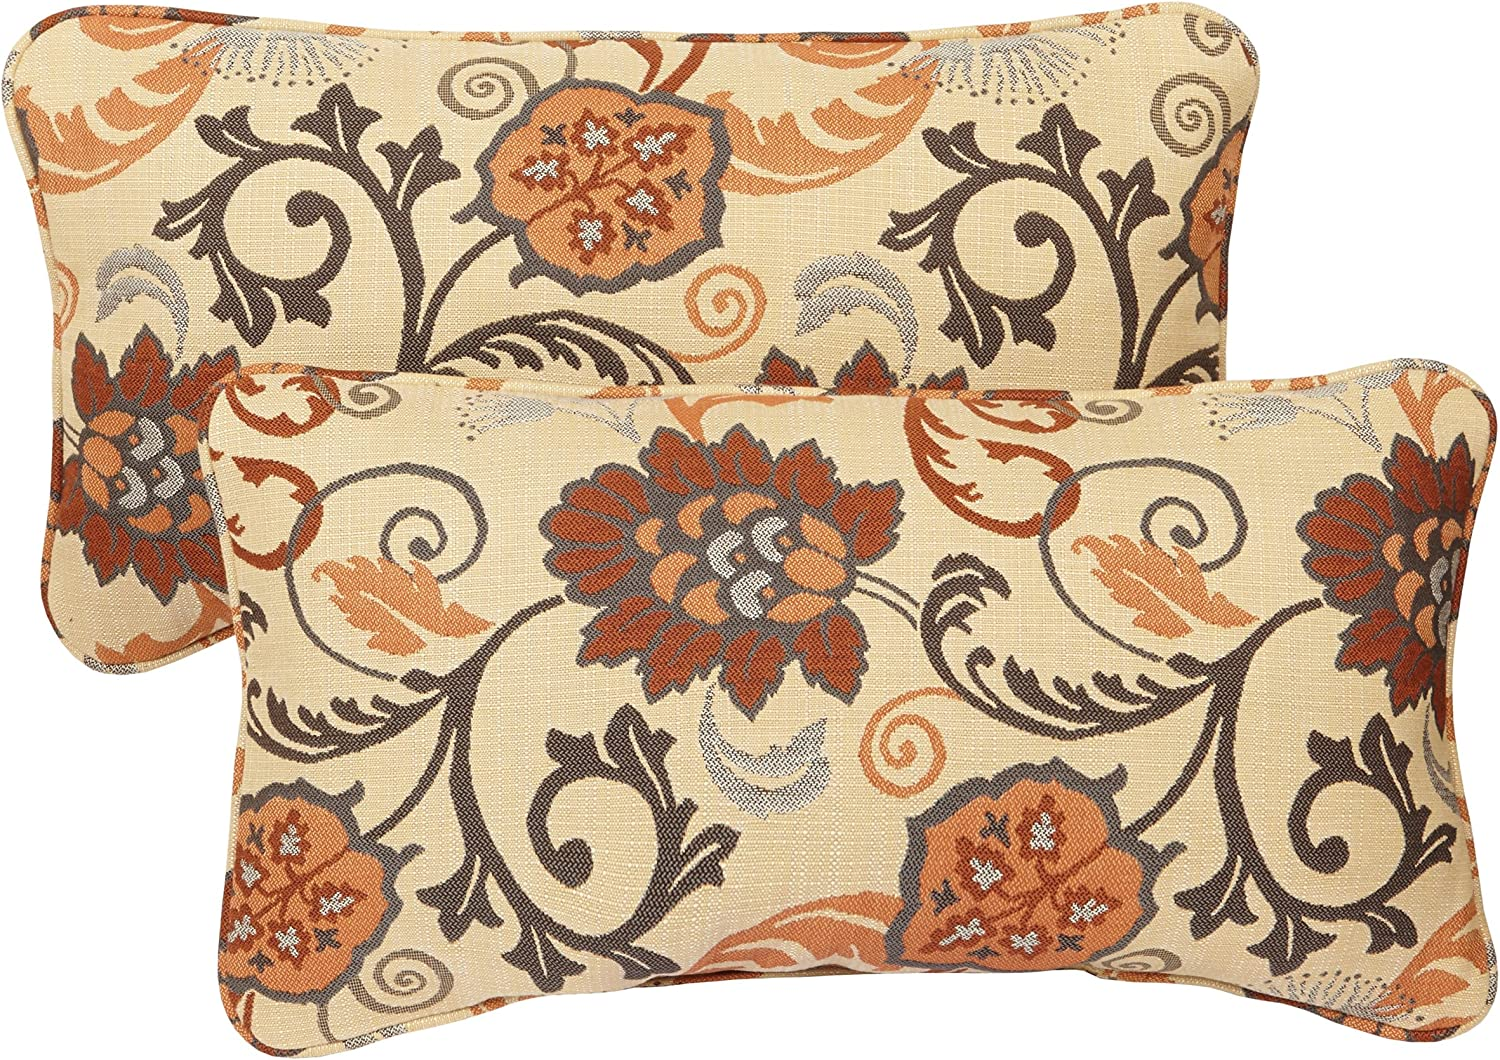 Mozaic AMPS106896 Indoor Outdoor Sunbrella Lumbar Pillows with Corded Edges, Set of 2 12 x 18 Brown Floral